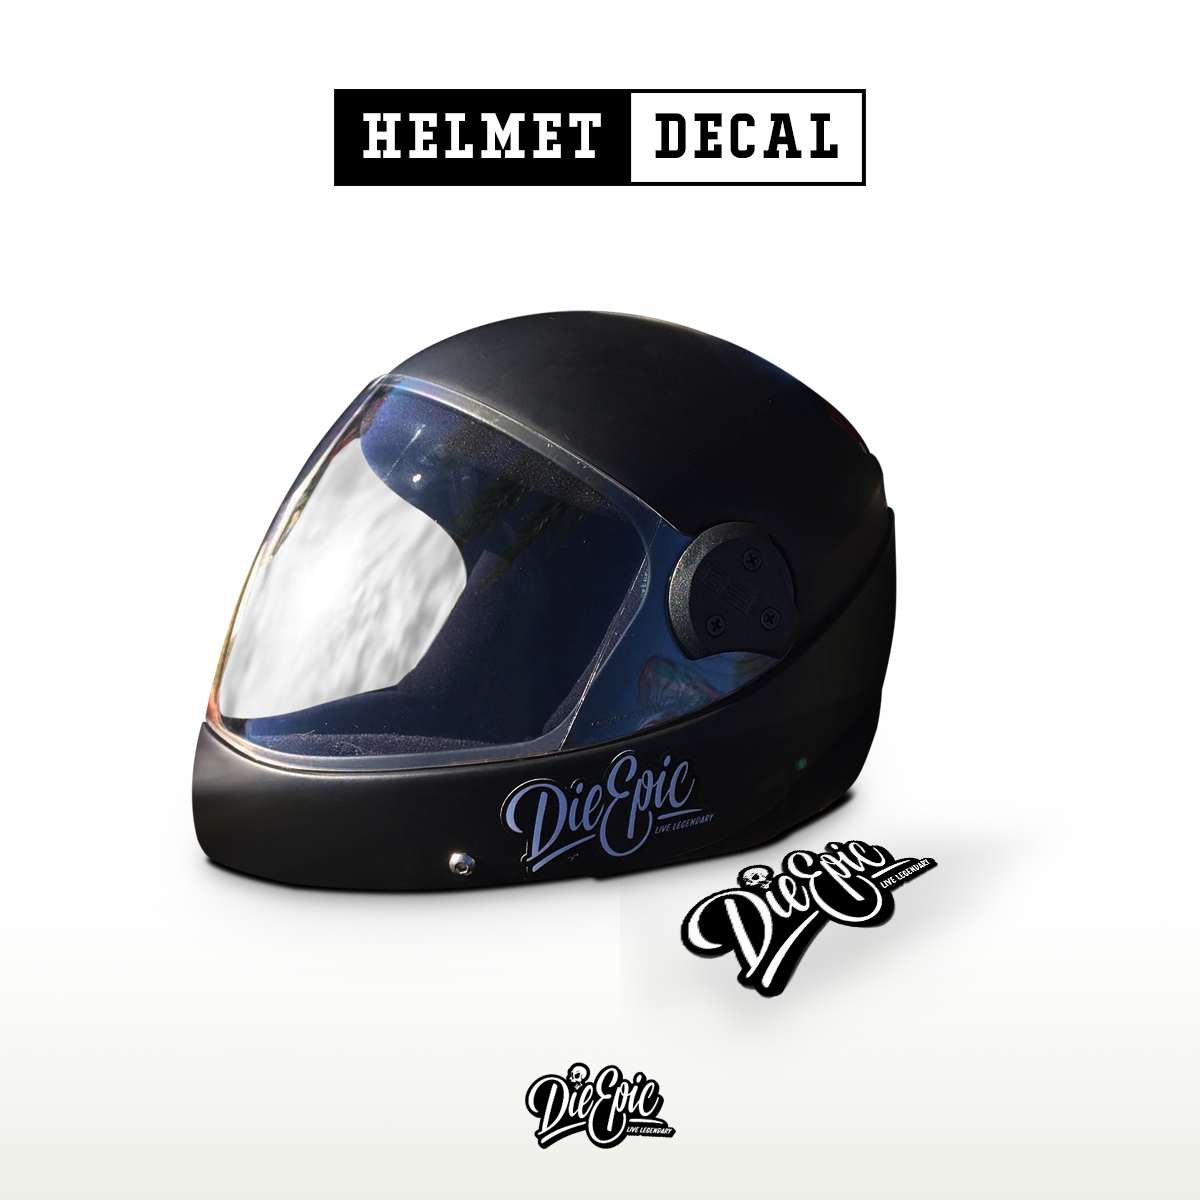 Die epic helmet decal · die epic helmet decal